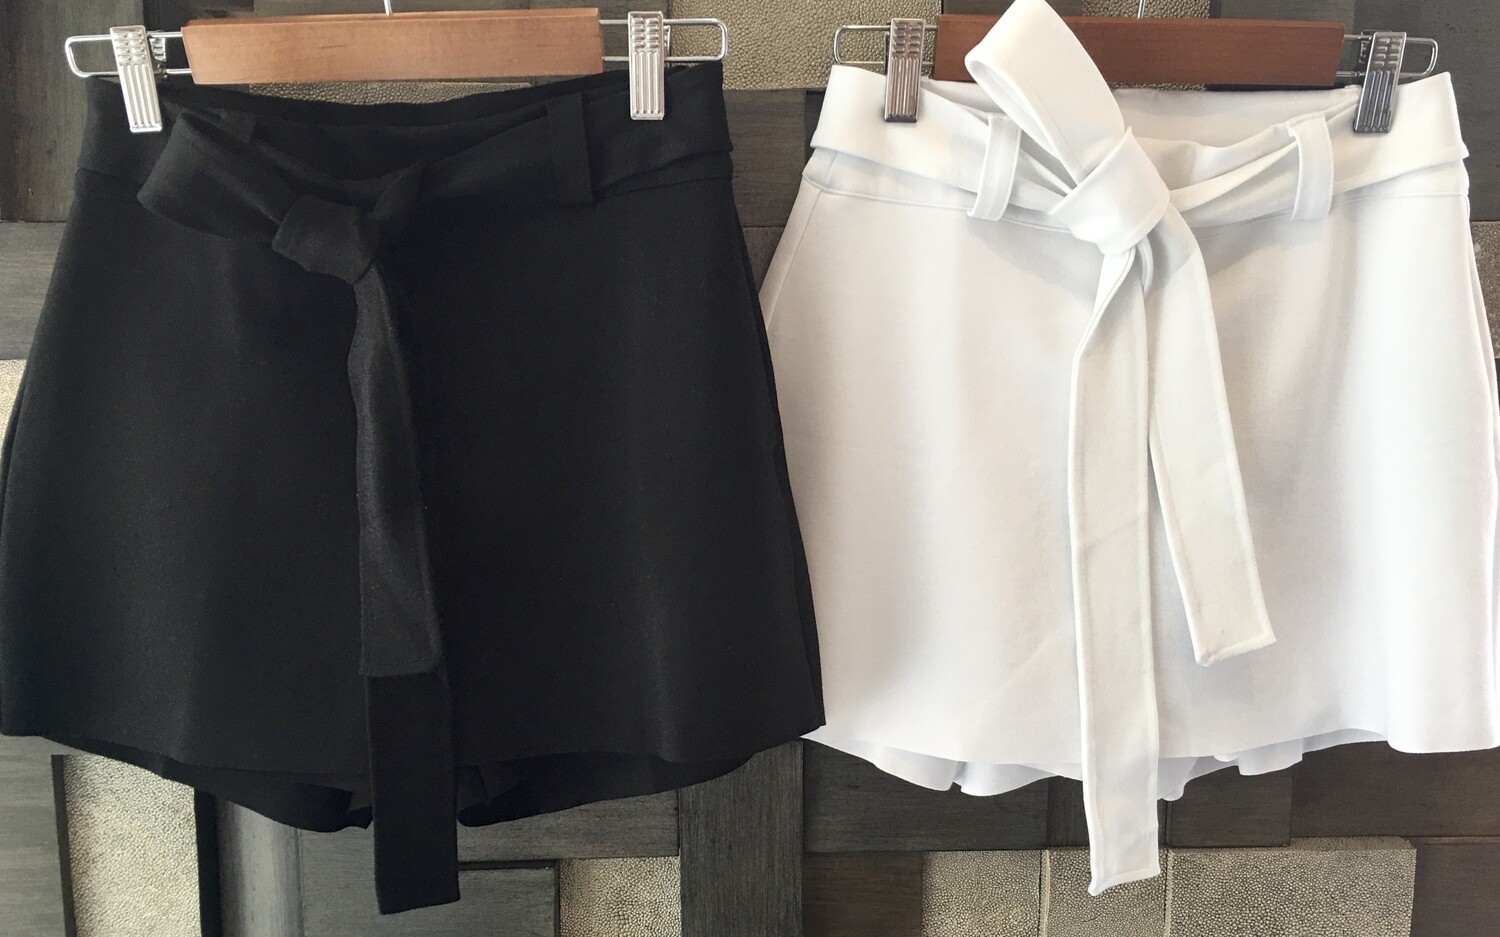 Black/White Mini Skort (Skirt/Shorts)